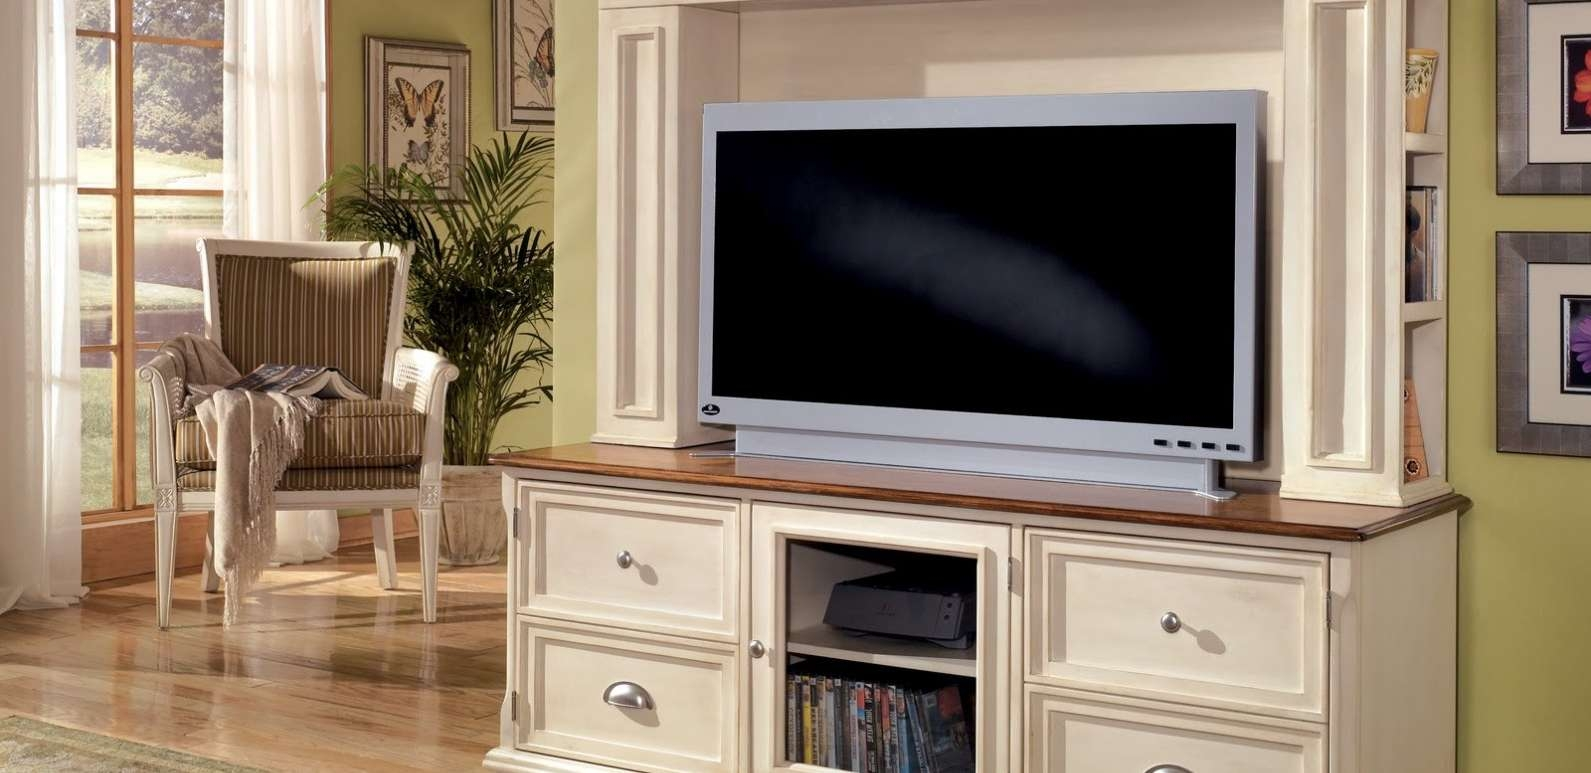 Tv : 24 Inch Wide Tv Stands Favorable 24 Inch Wide Tv Stands Within 24 Inch Wide Tv Stands (View 6 of 15)